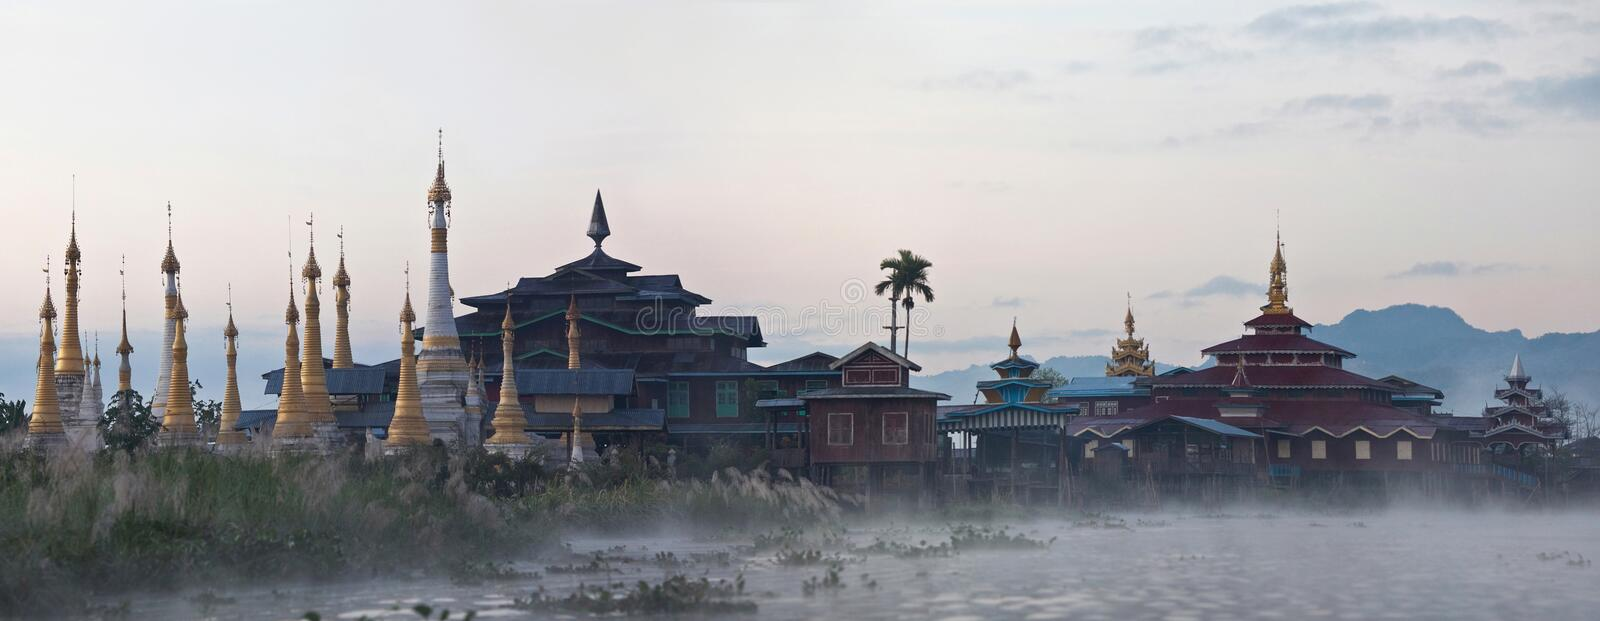 Ancient Aung Mingalar pagoda on Inle lake, Myanmar. Panorama of ancient Aung Mingalar pagoda and monastery over thick mist on Inle lake, Shan state, Myanmar stock image